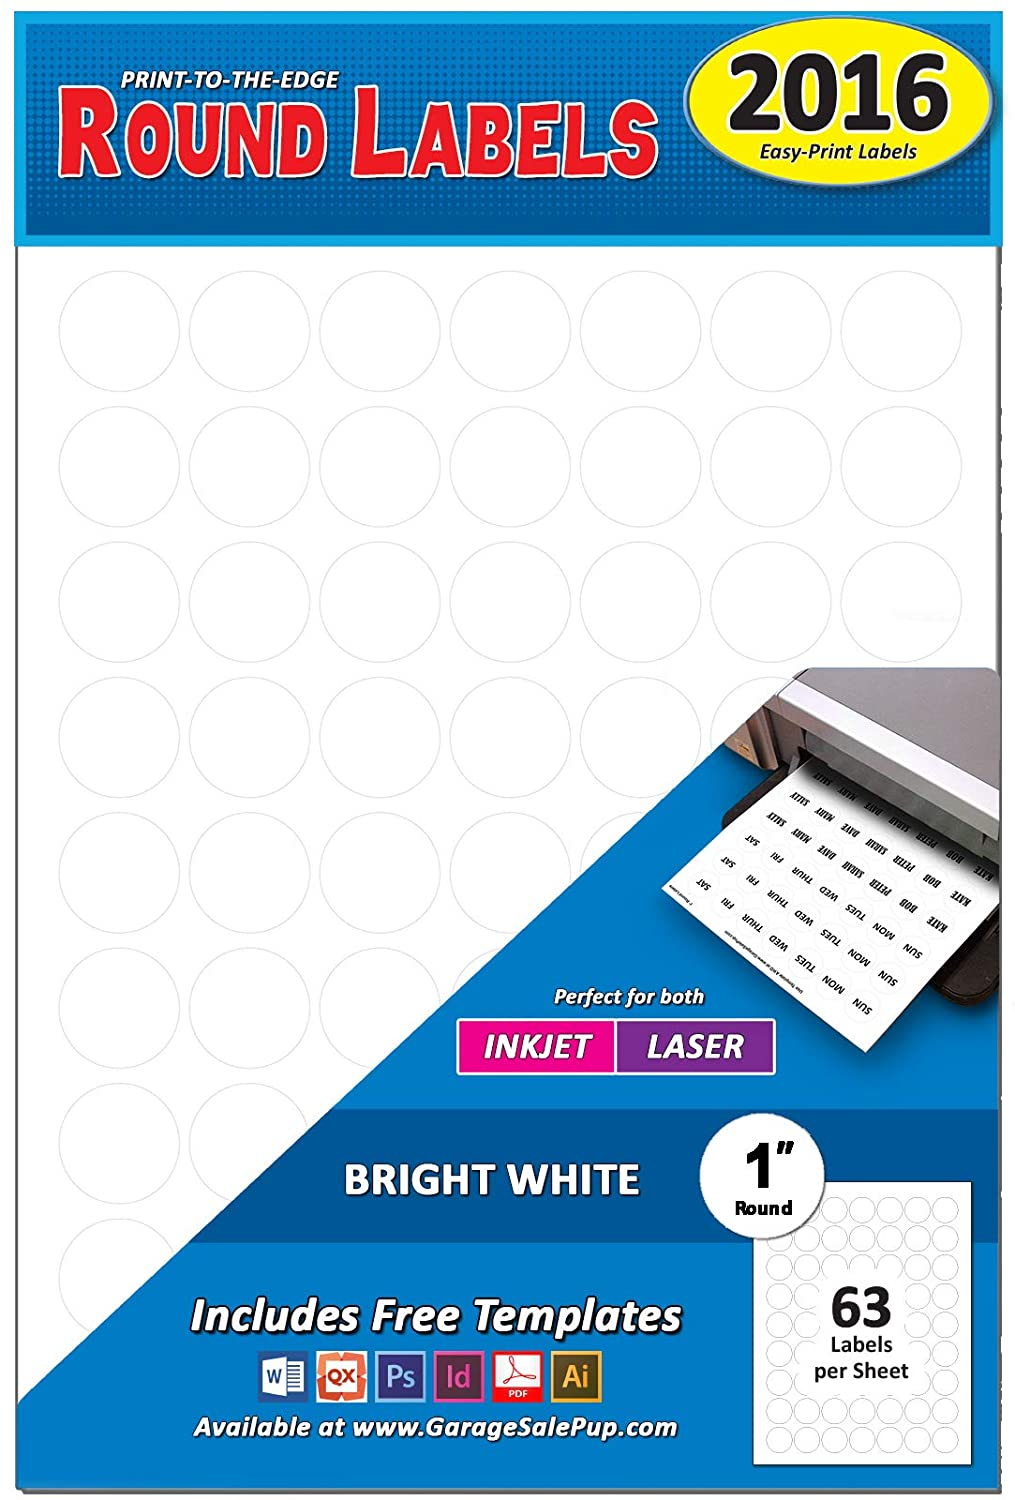 Pack of 2016, 1-inch Diameter Round Dot Labels, White, 8 1/2 x 11 Inch Sheet, Fits All Laser/Inkjet Printers, 63 Labels per Sheet, 1